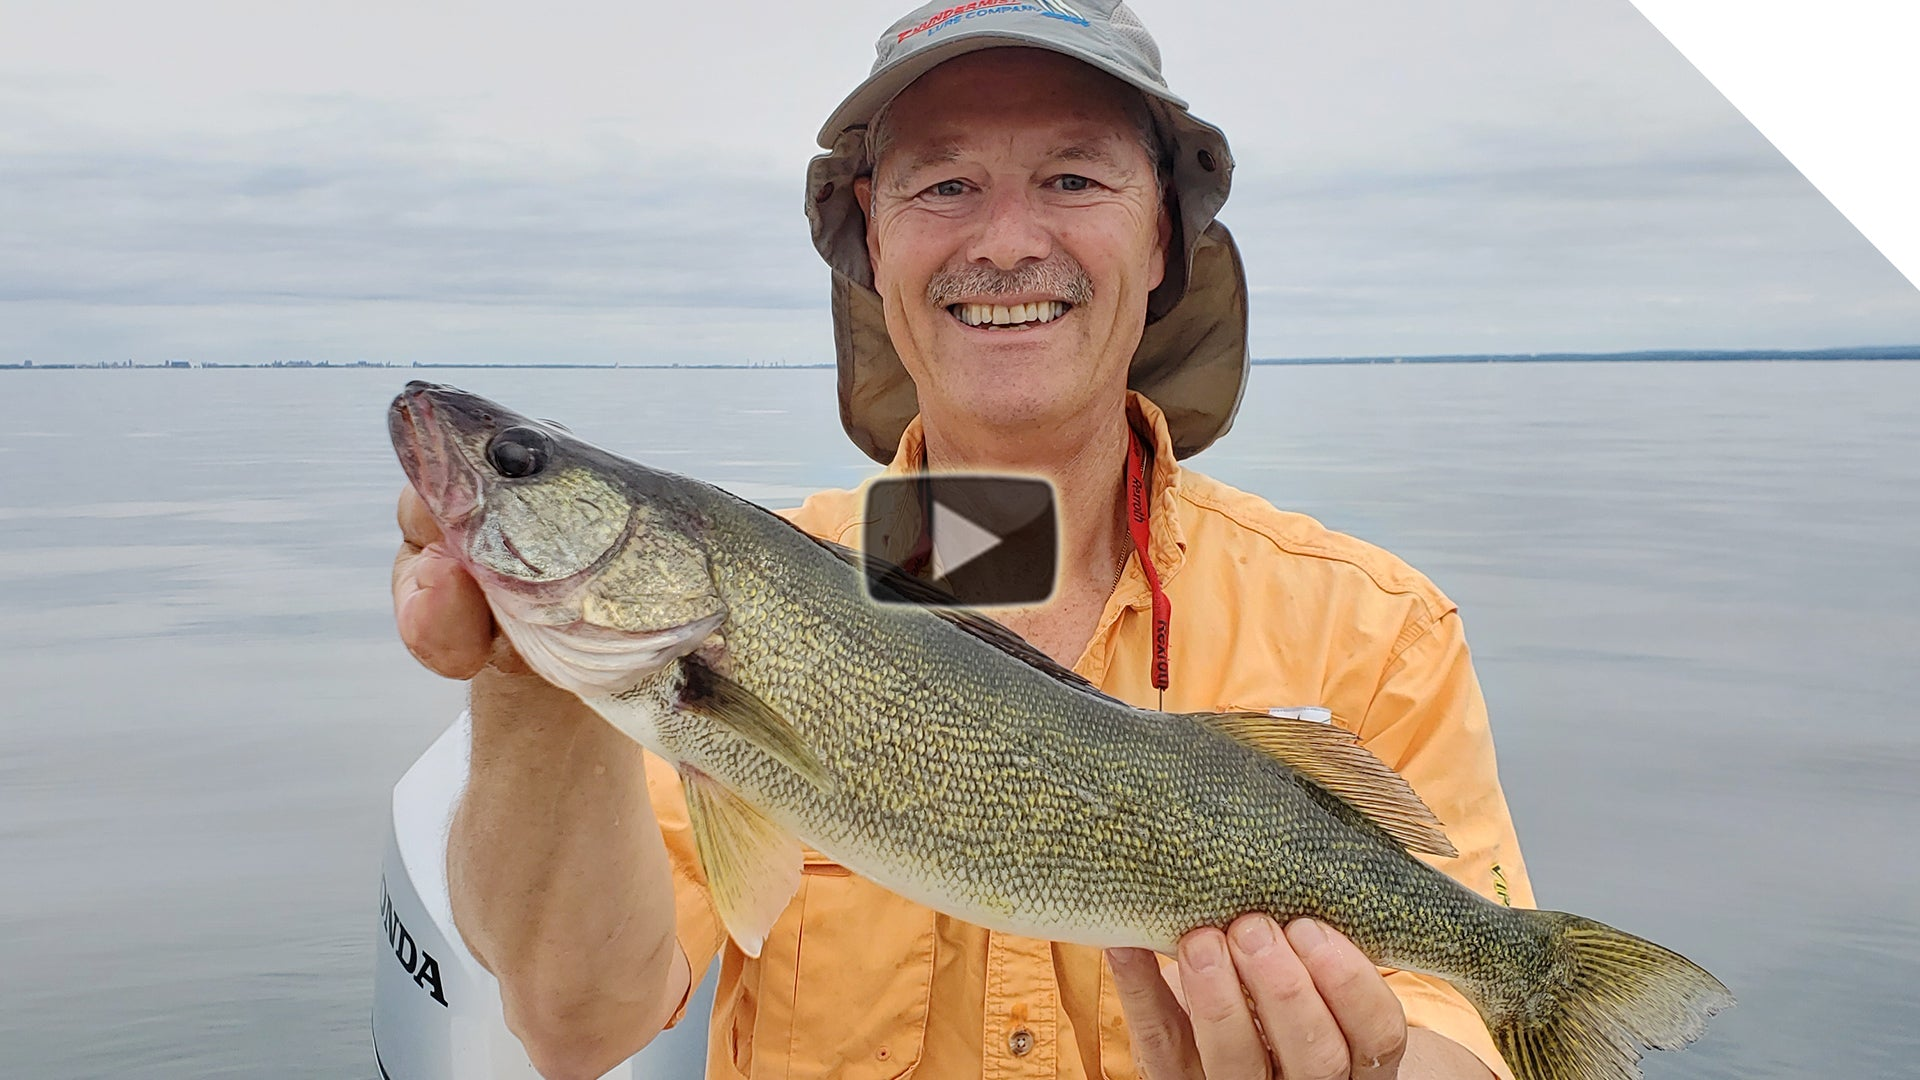 Walleye, sheepshead, perch, and jigging tips